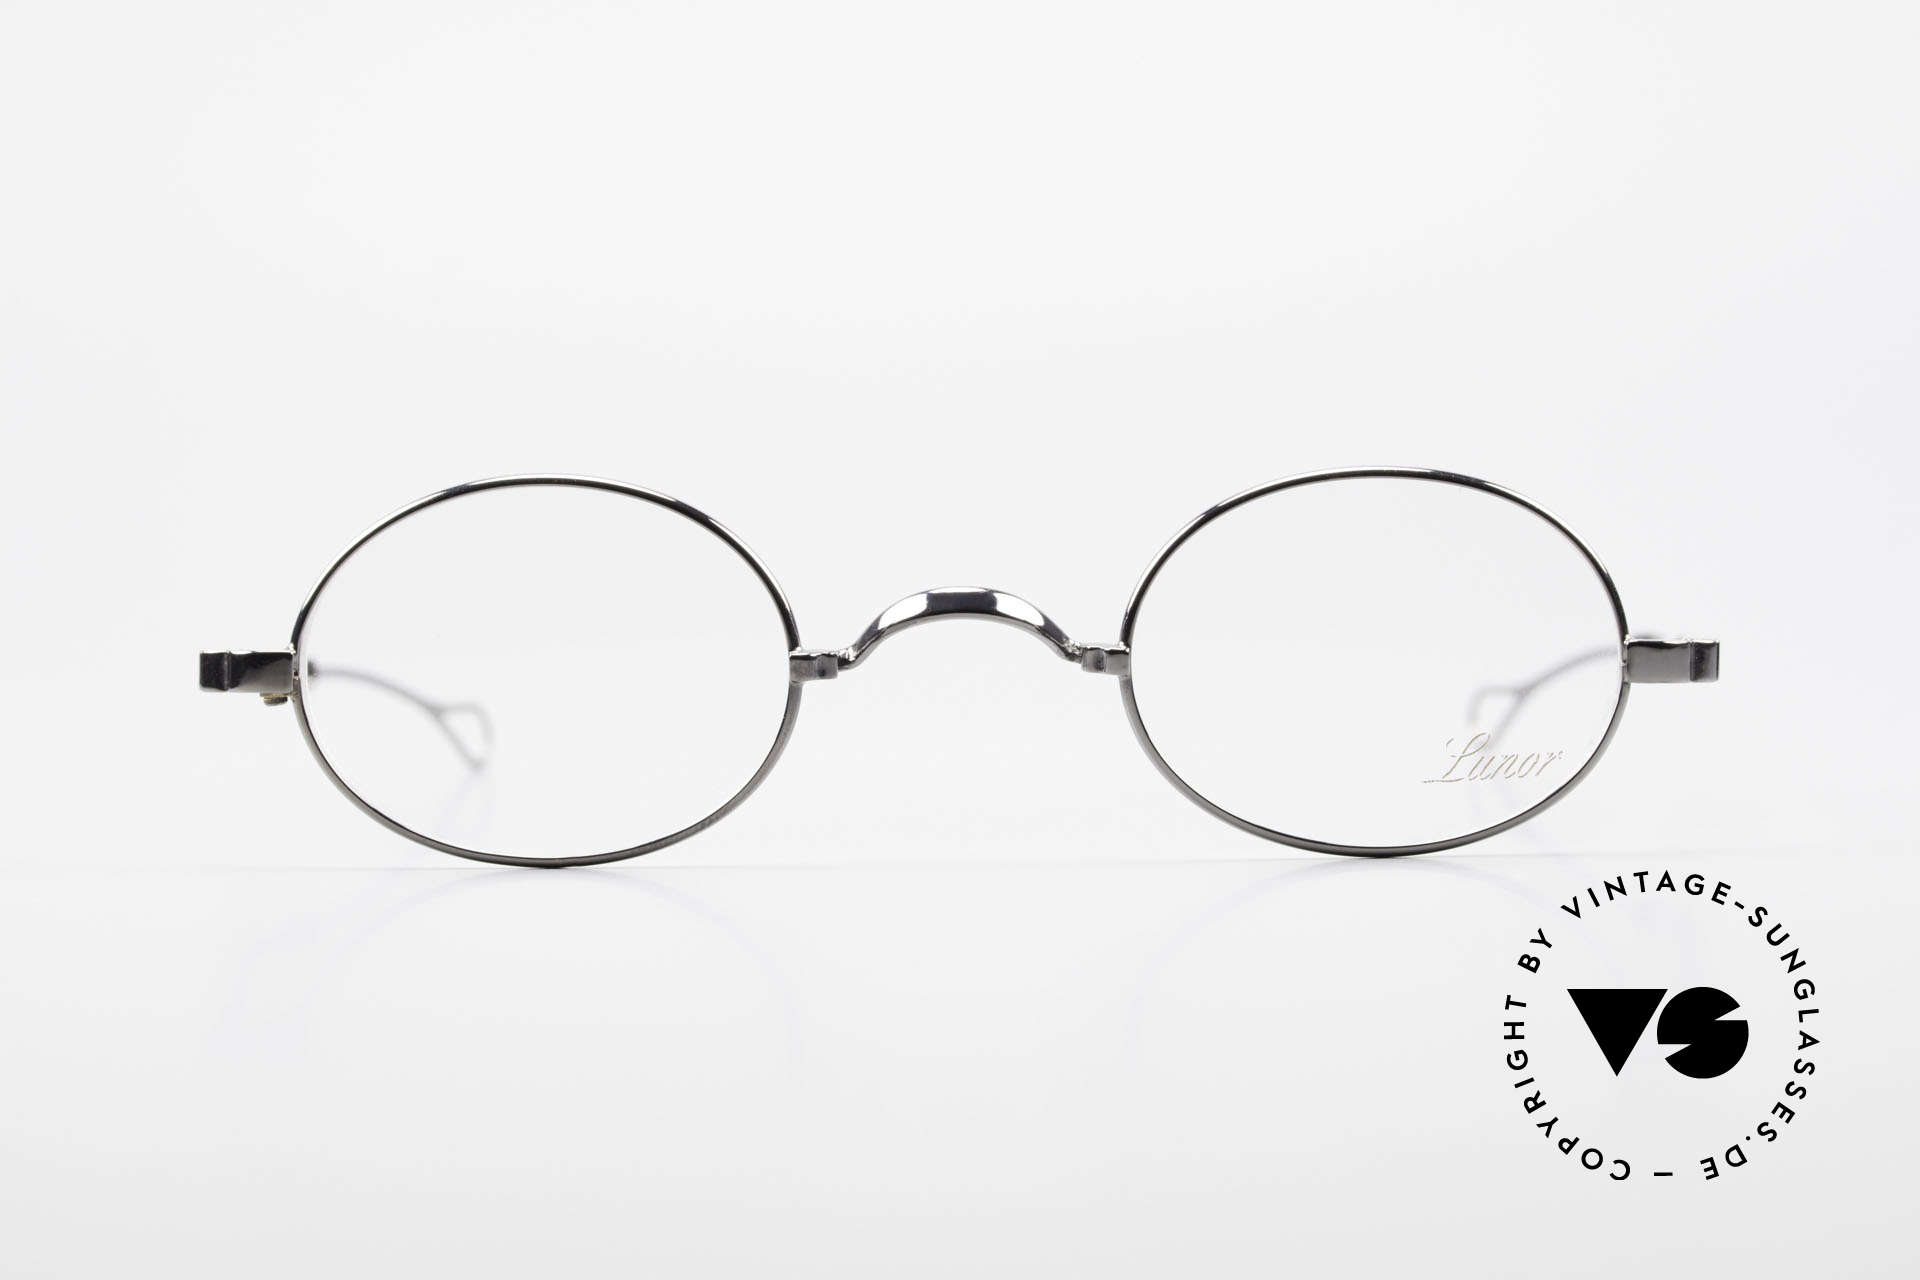 Lunor I 22 Telescopic Oval Frame Extendable Arms, traditional German brand; quality handmade in Germany, Made for Men and Women